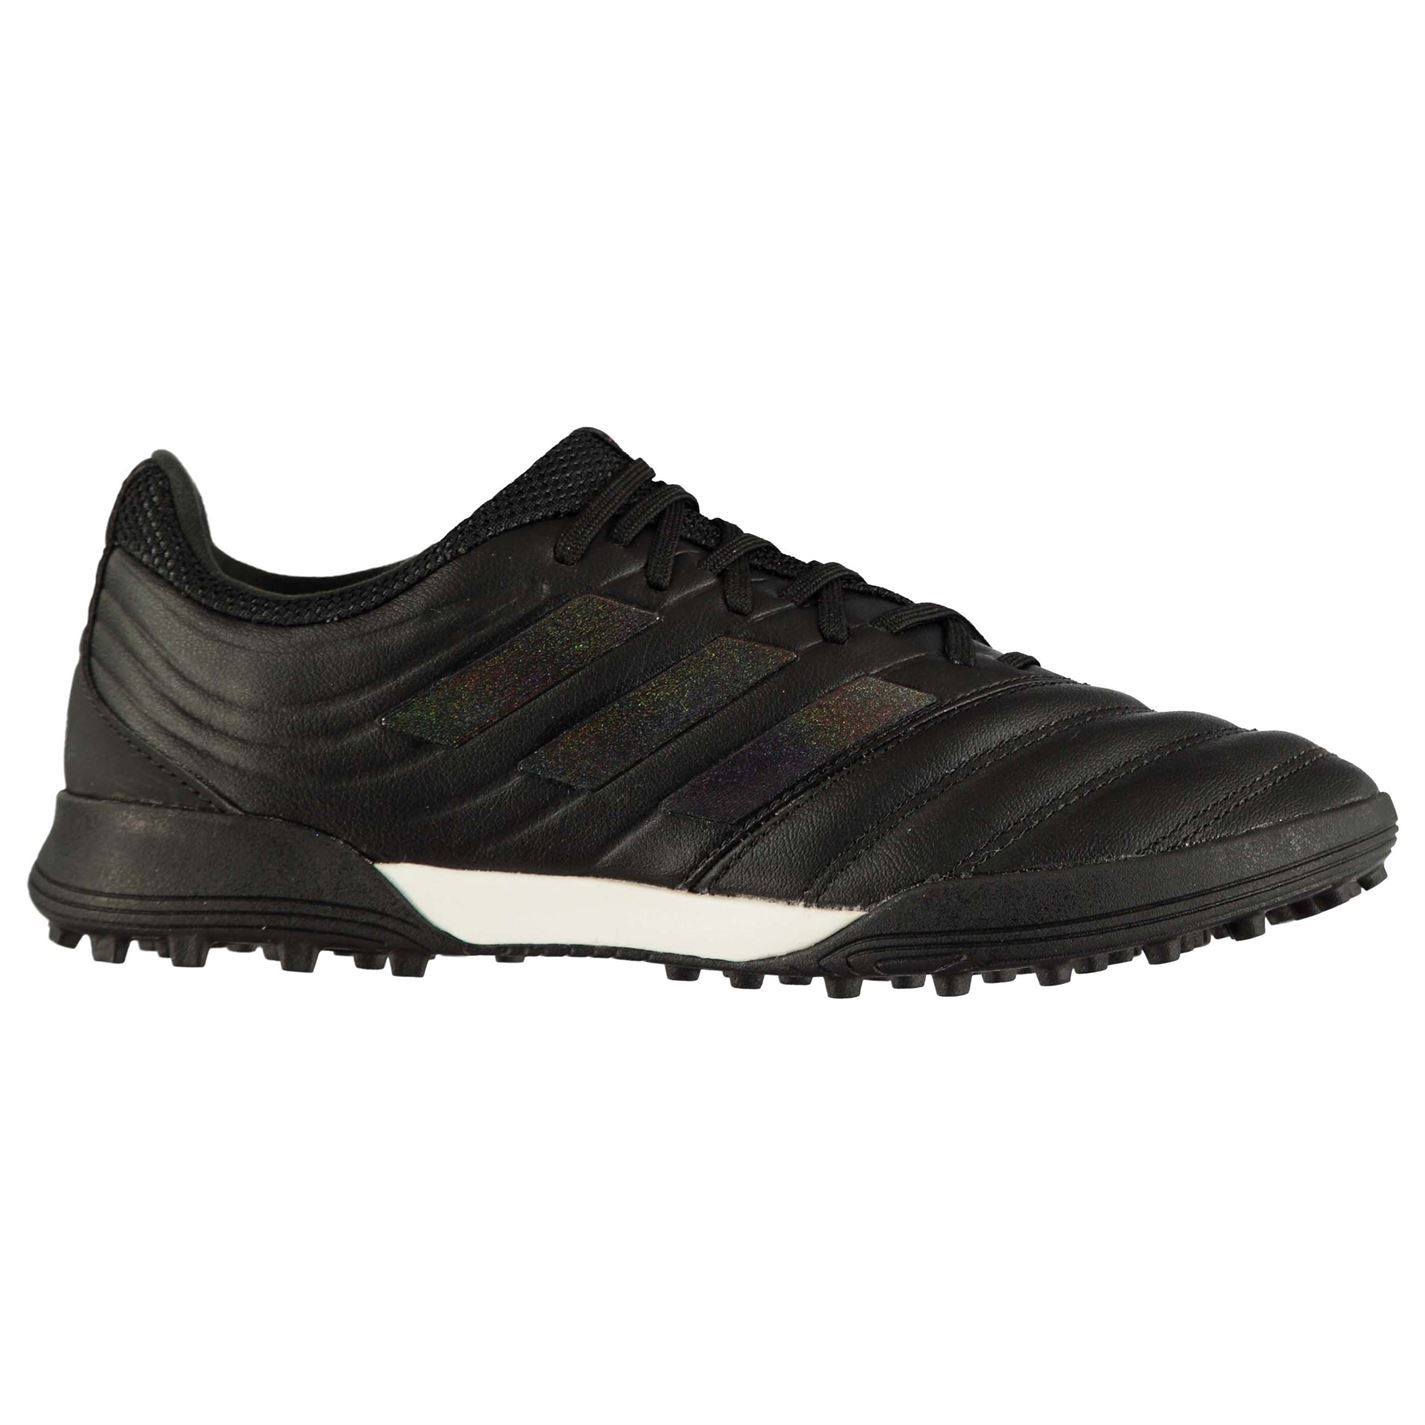 Adidas-Copa-19-3-Astro-Turf-Football-Chaussures-Homme-Football-Entrainement-Baskets miniature 9